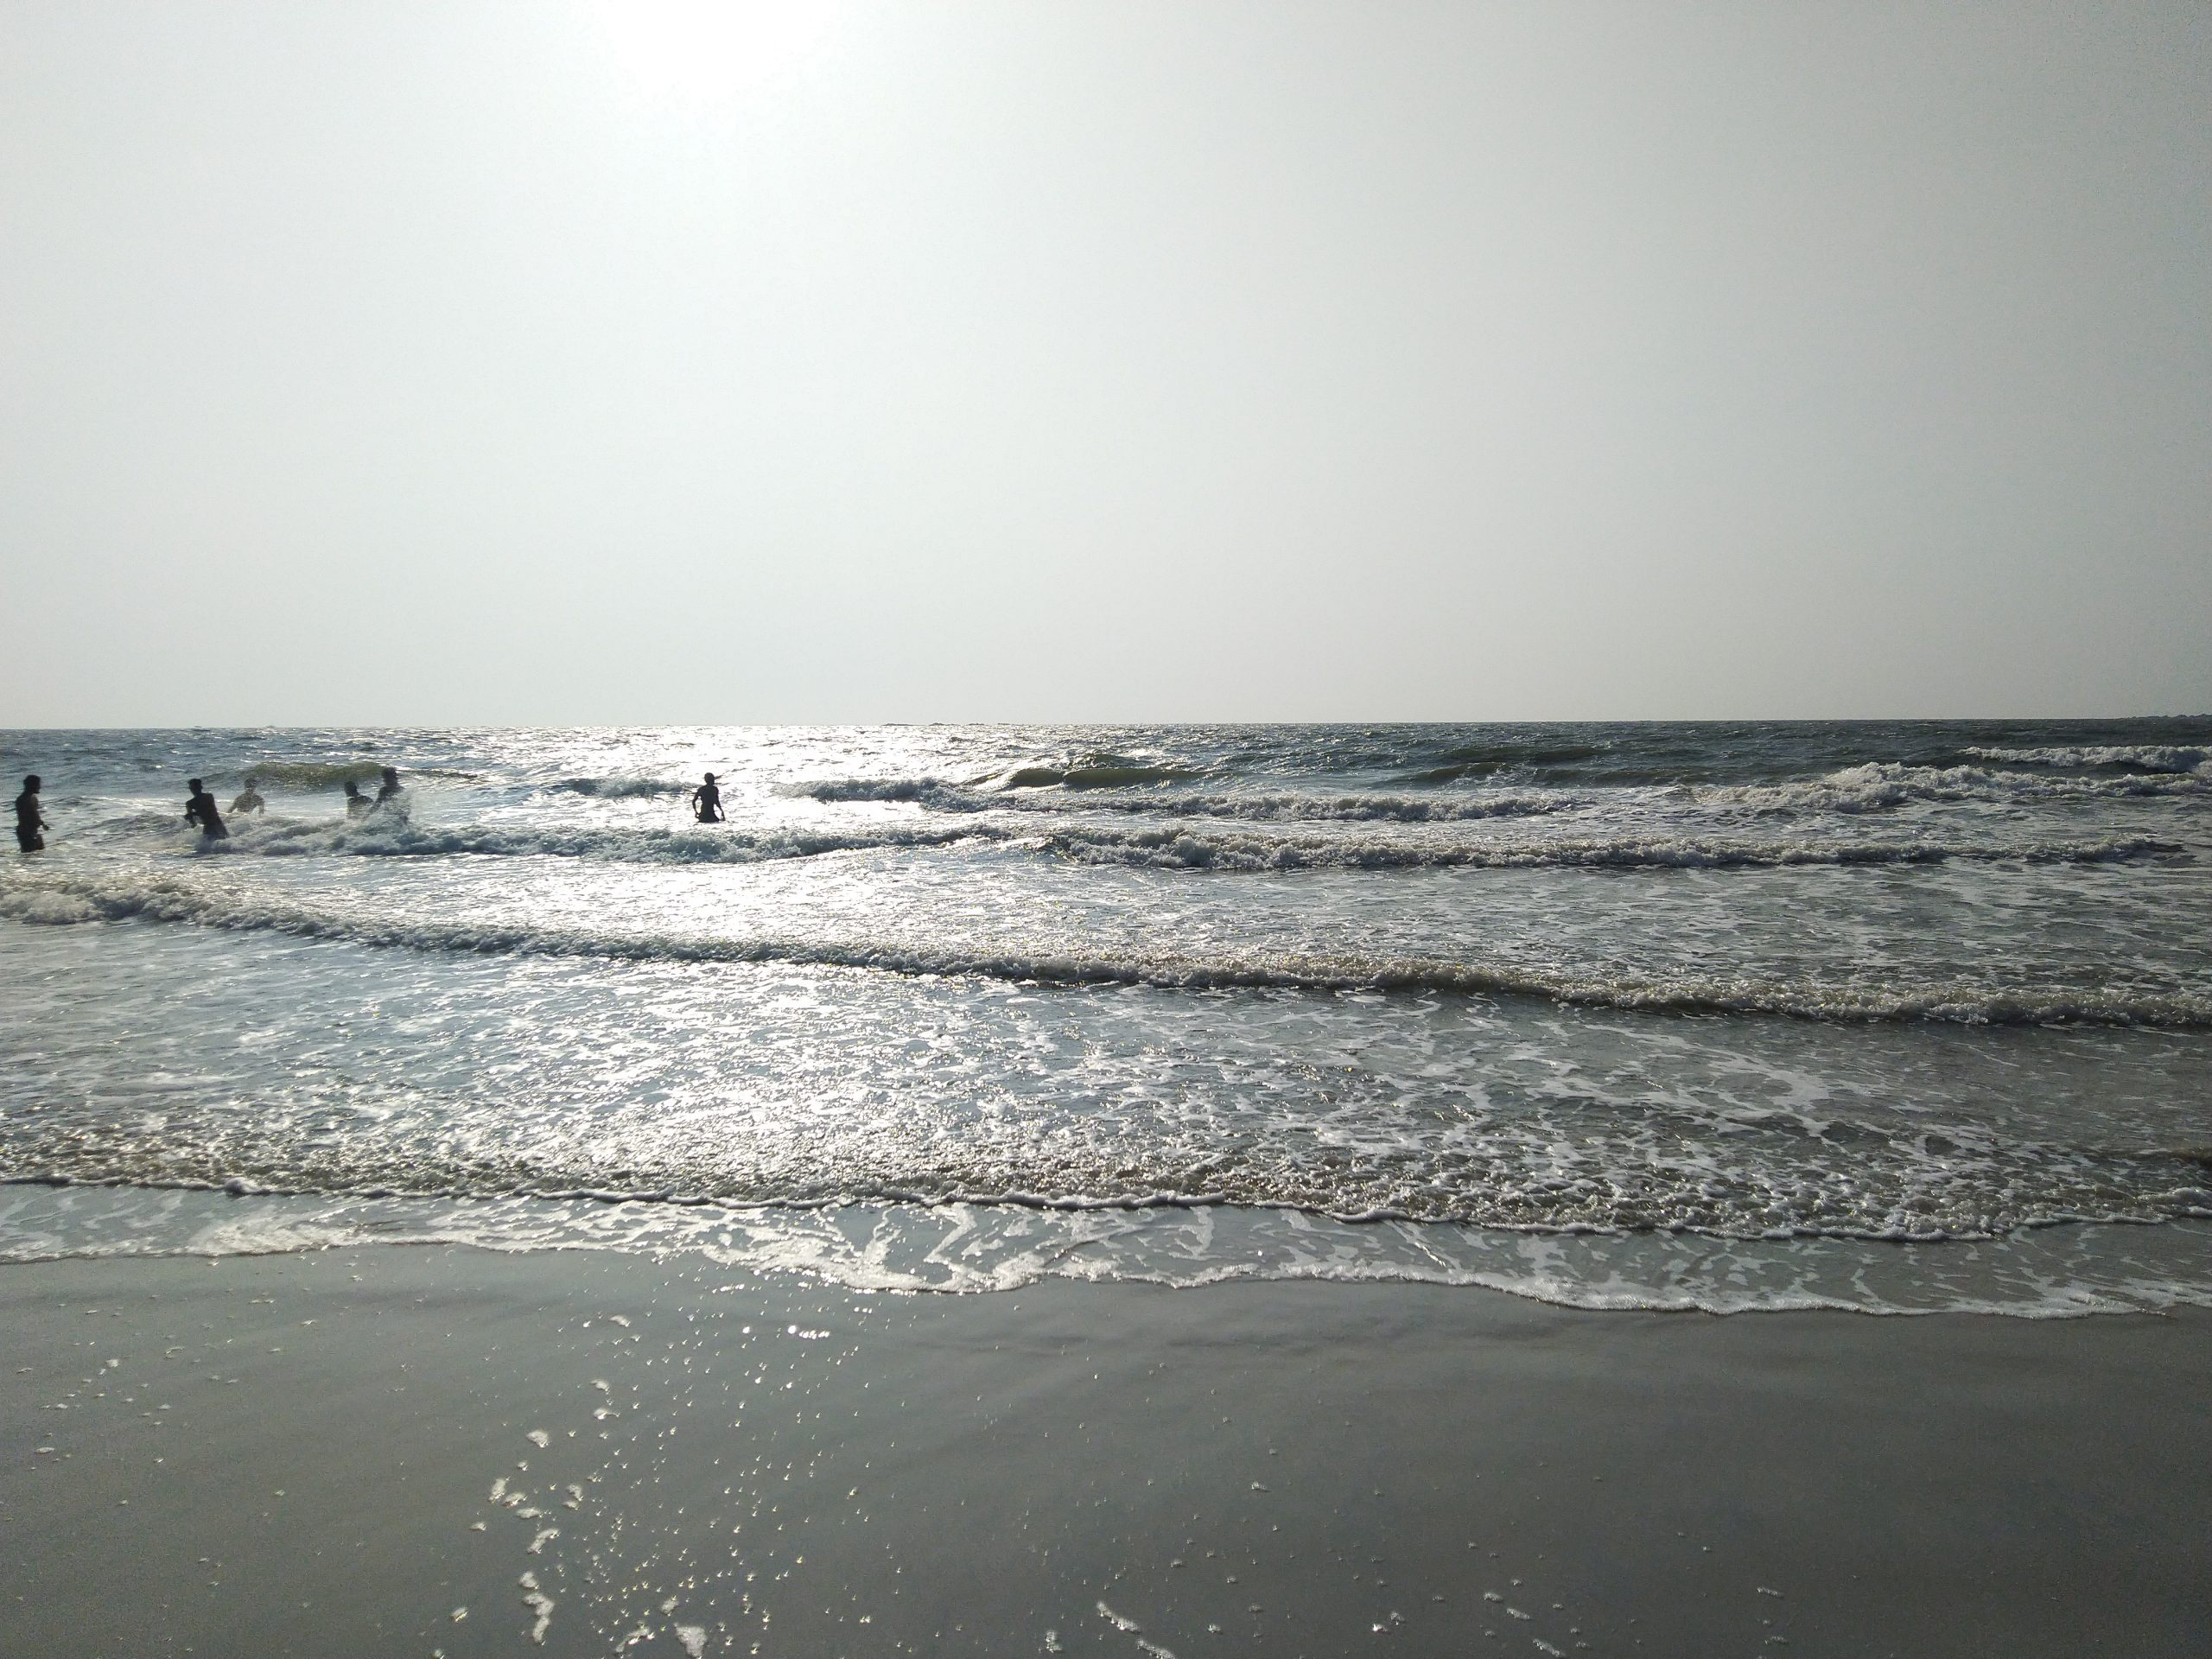 sun and the waves